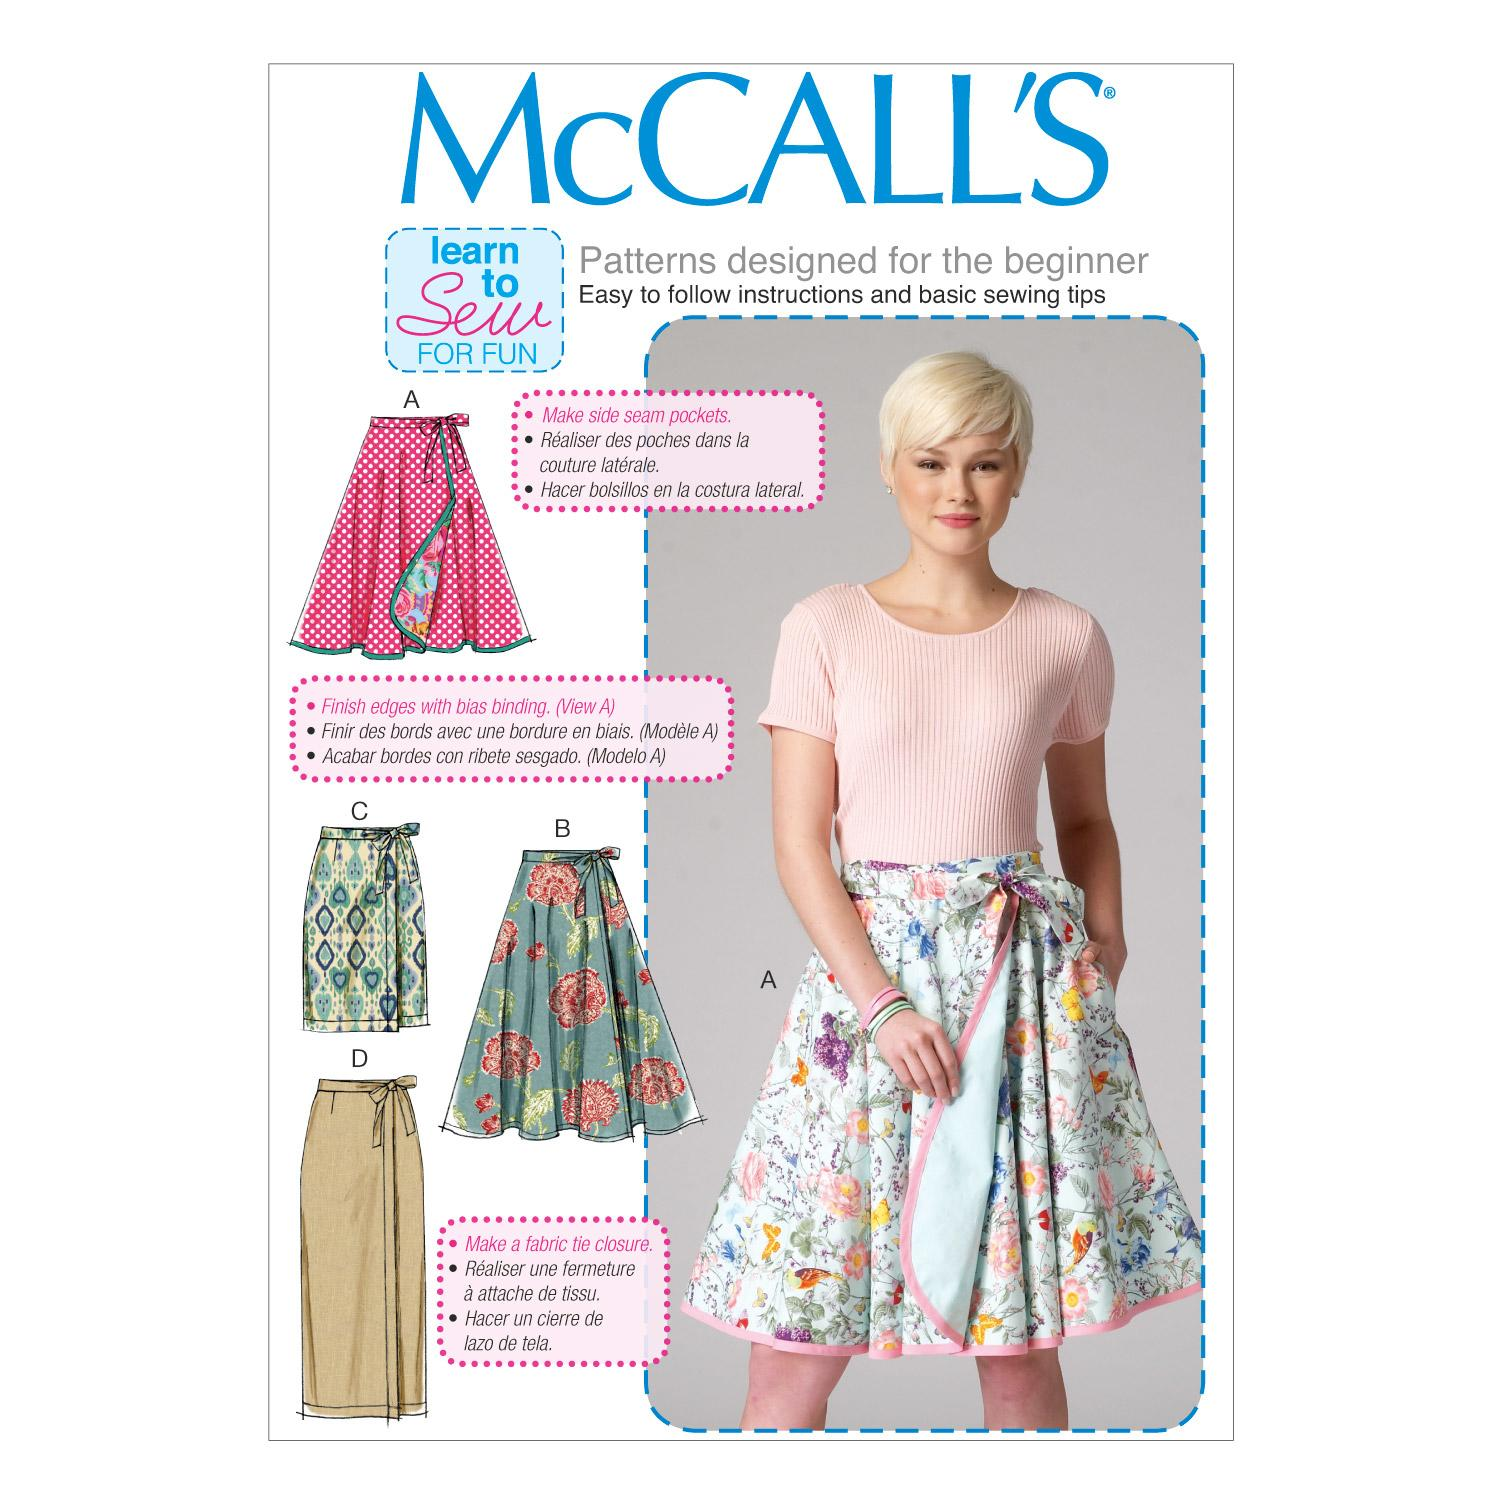 McCalls M7129 Learn To Sew for Fun, Skirts